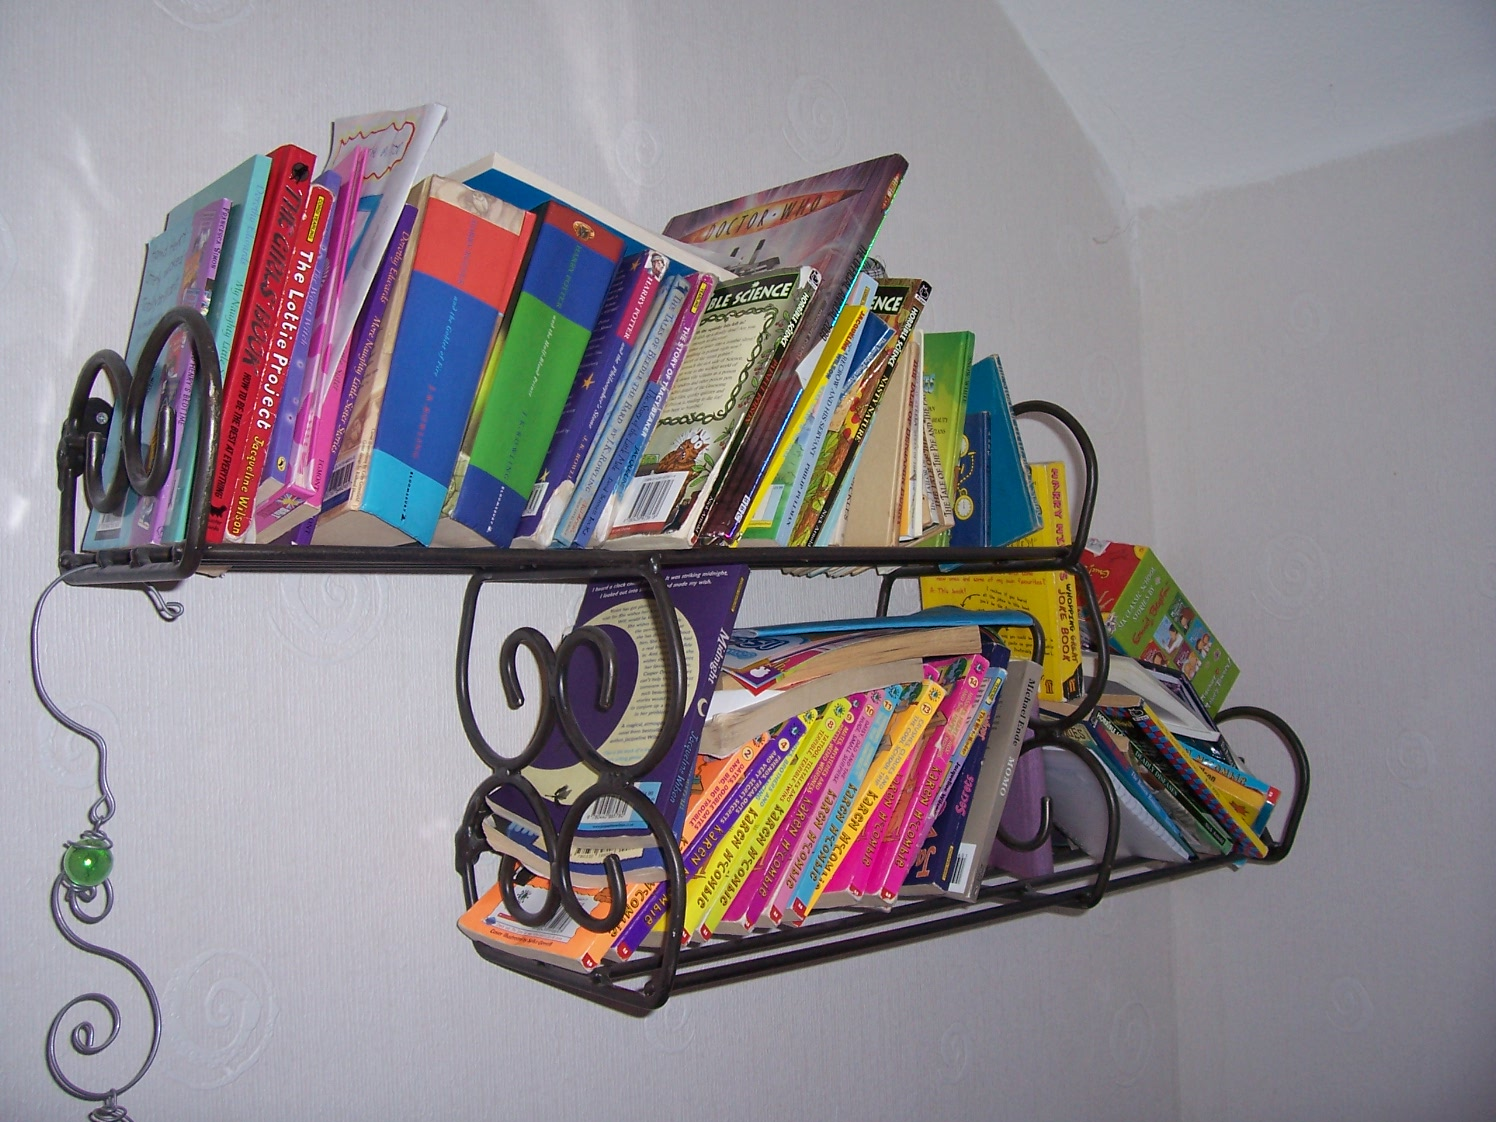 wall mounted wrought iron book shelf